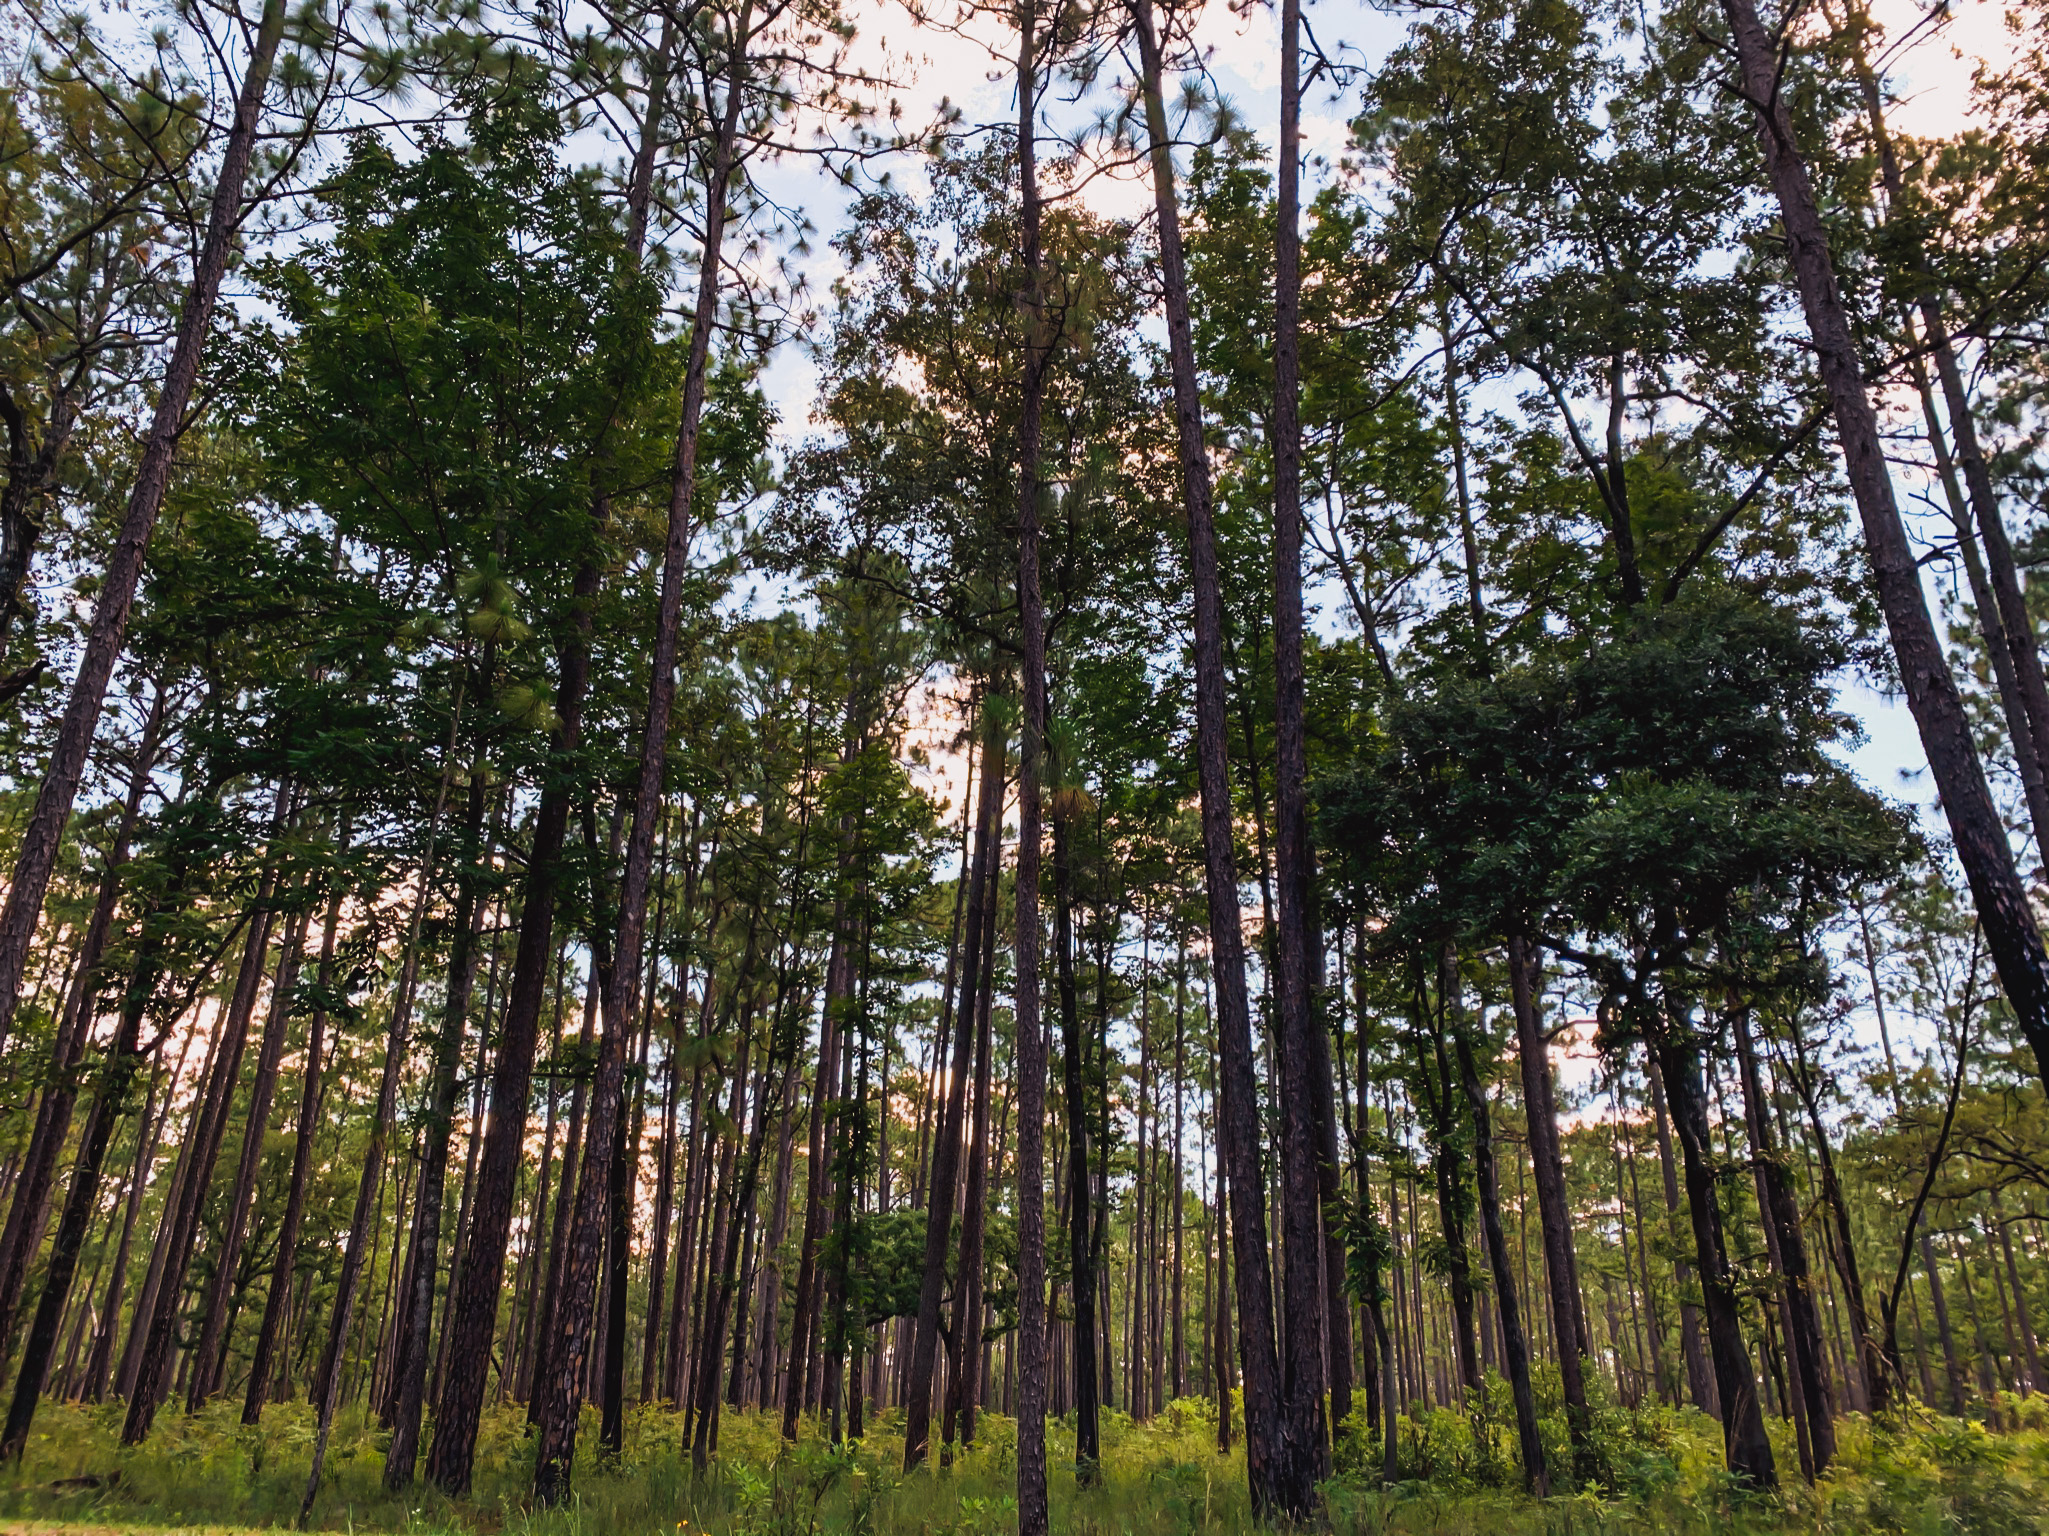 forest trees in O'leno state park historic site in high springs